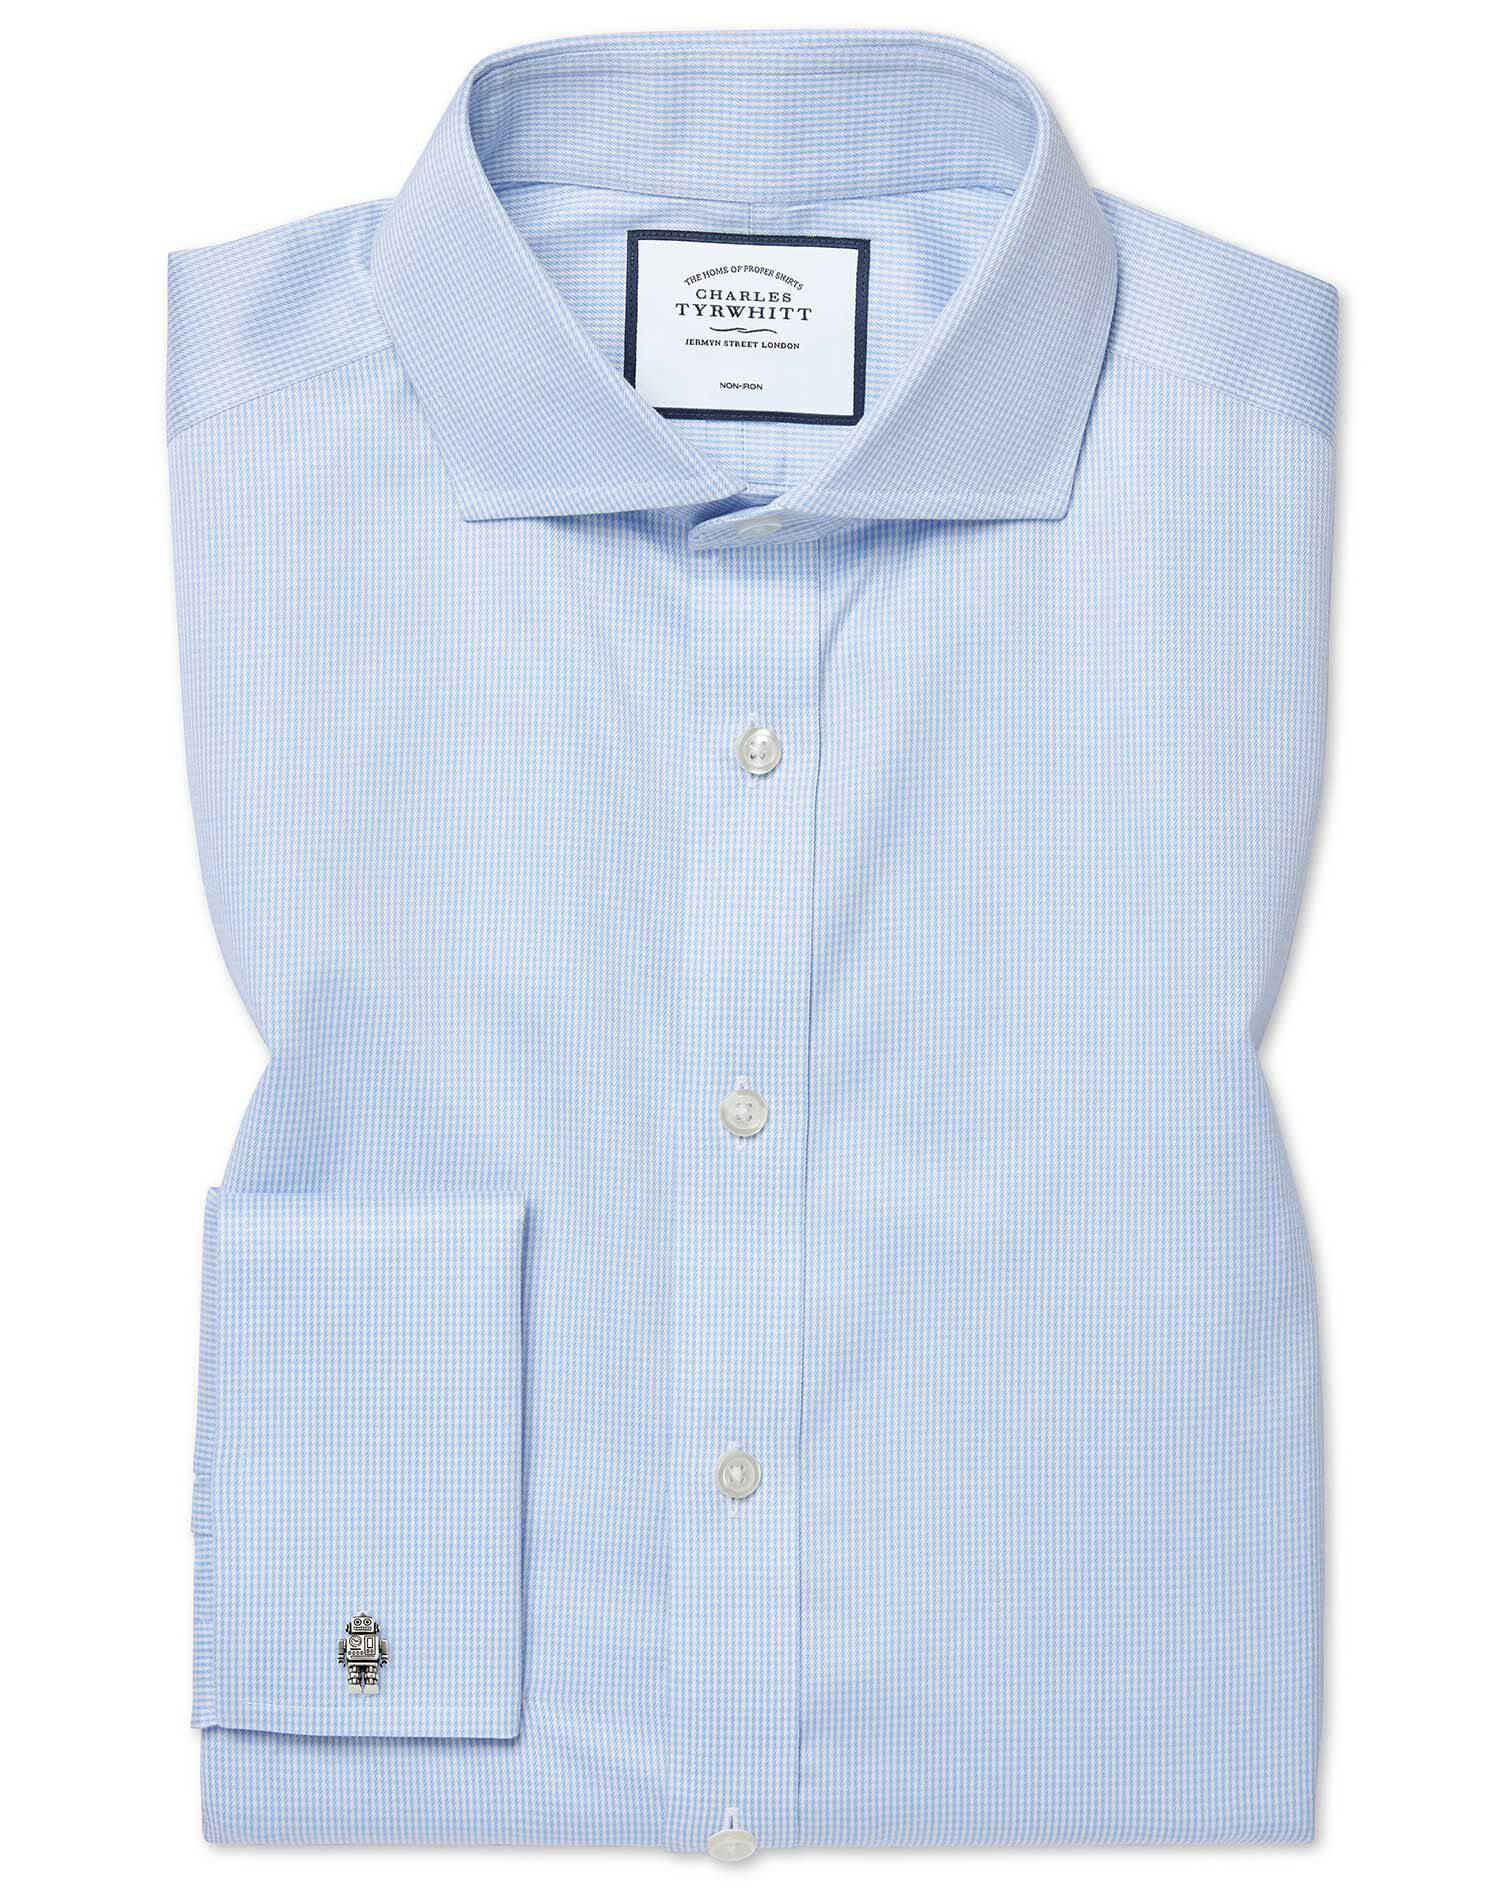 Extra Slim Fit Cutaway Non-Iron Puppytooth Sky Blue Cotton Formal Shirt Single Cuff Size 15.5/32 by